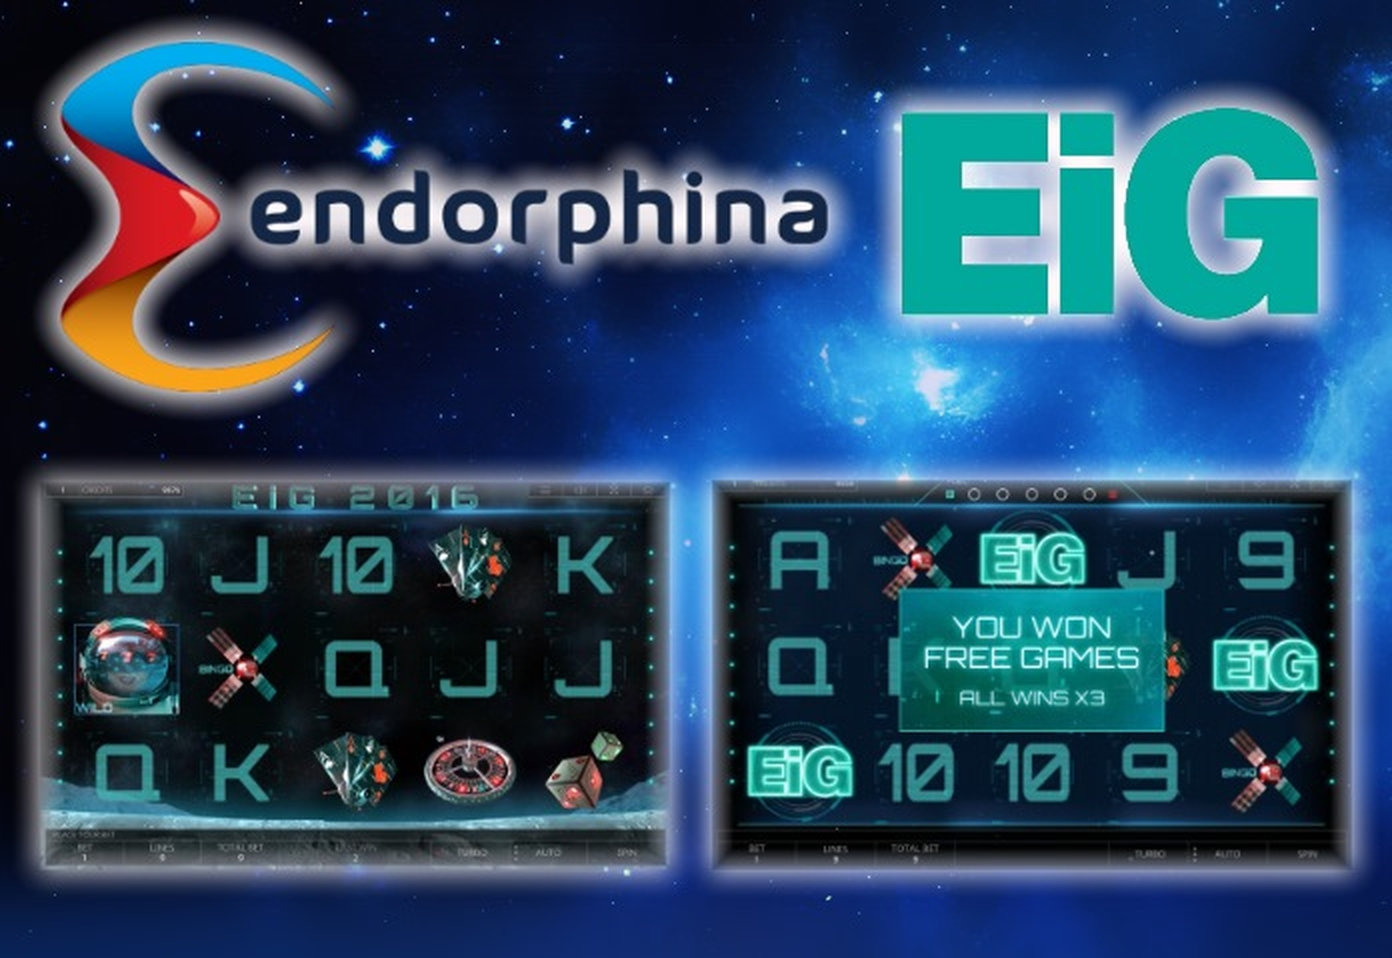 The EiG2016 Online Slot Demo Game by Endorphina